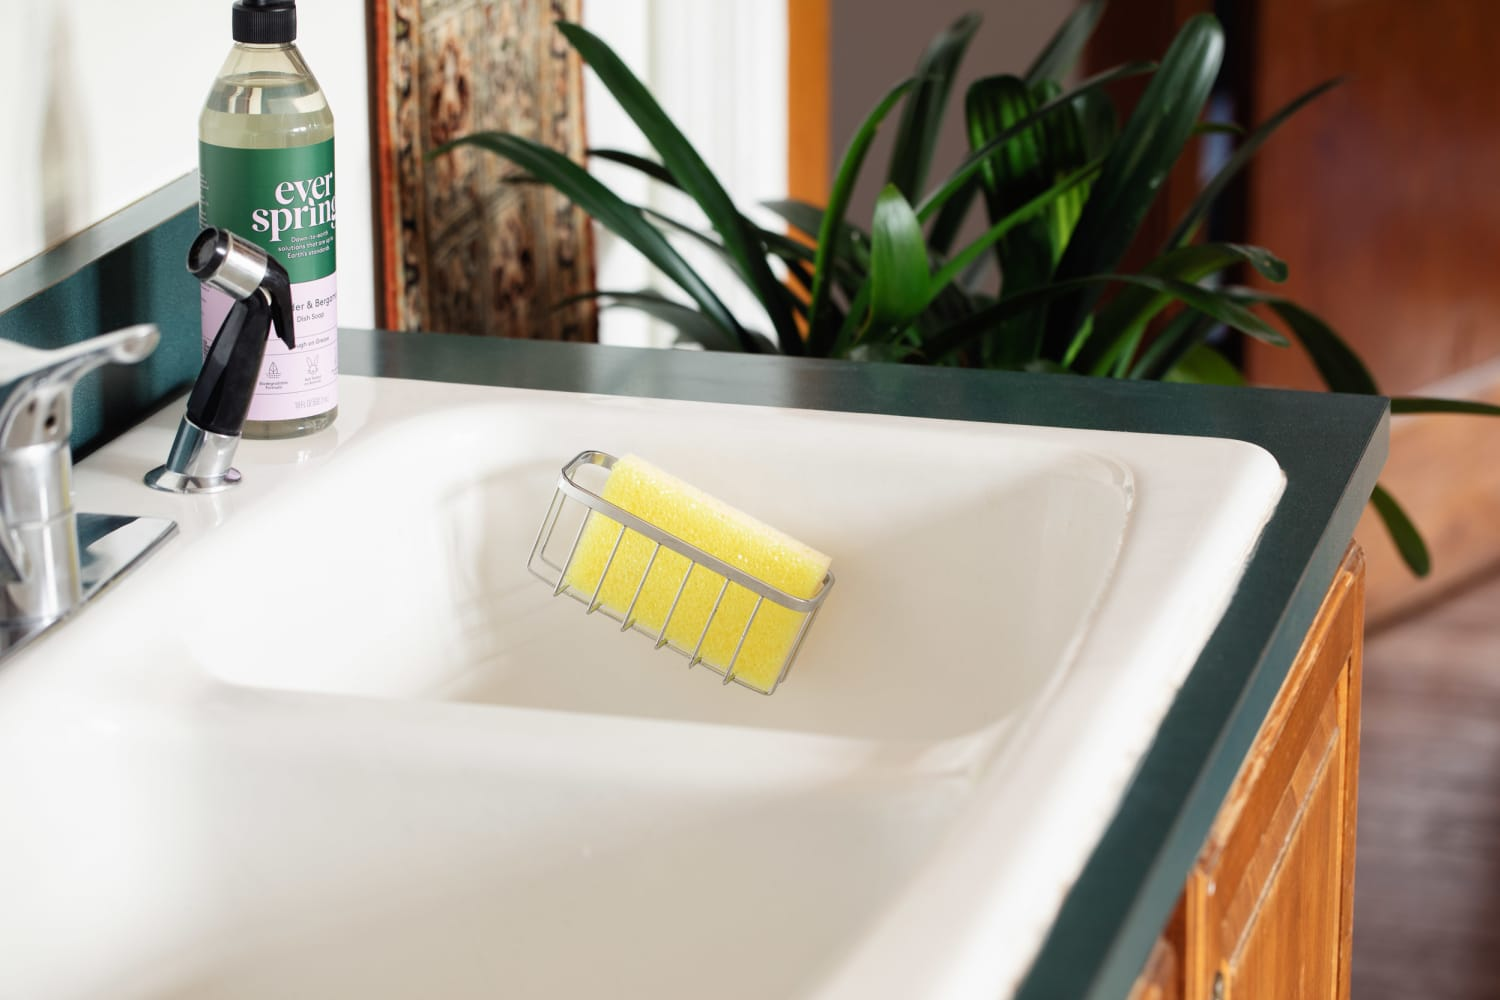 The Simple Trick That'll Make Your Sink Area a Million Times Better